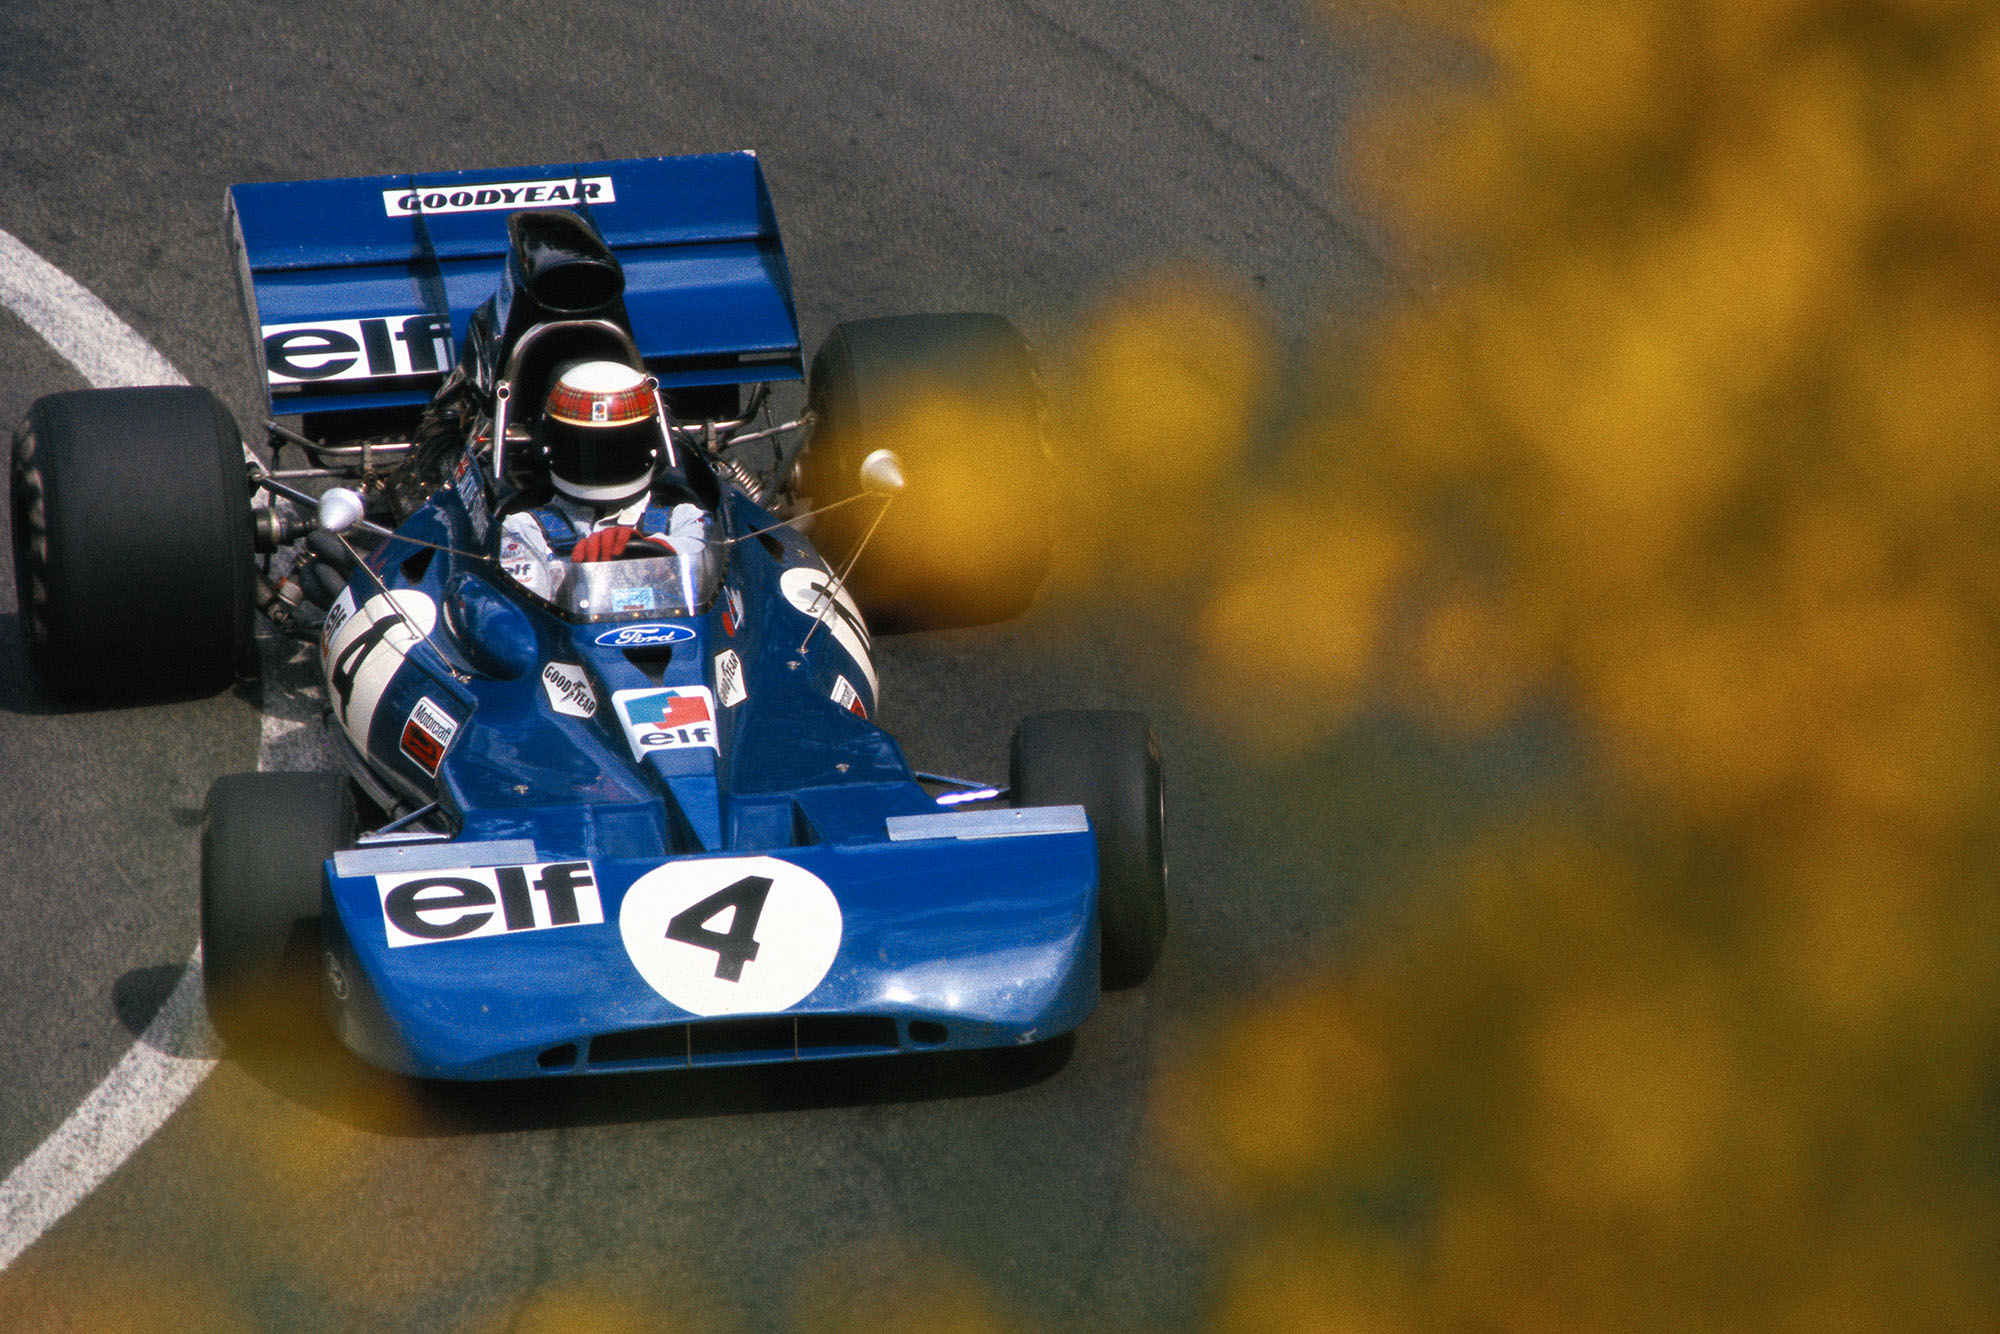 Jackie Stewart driving for Tyrrell at the 1972 French Grand Prix.